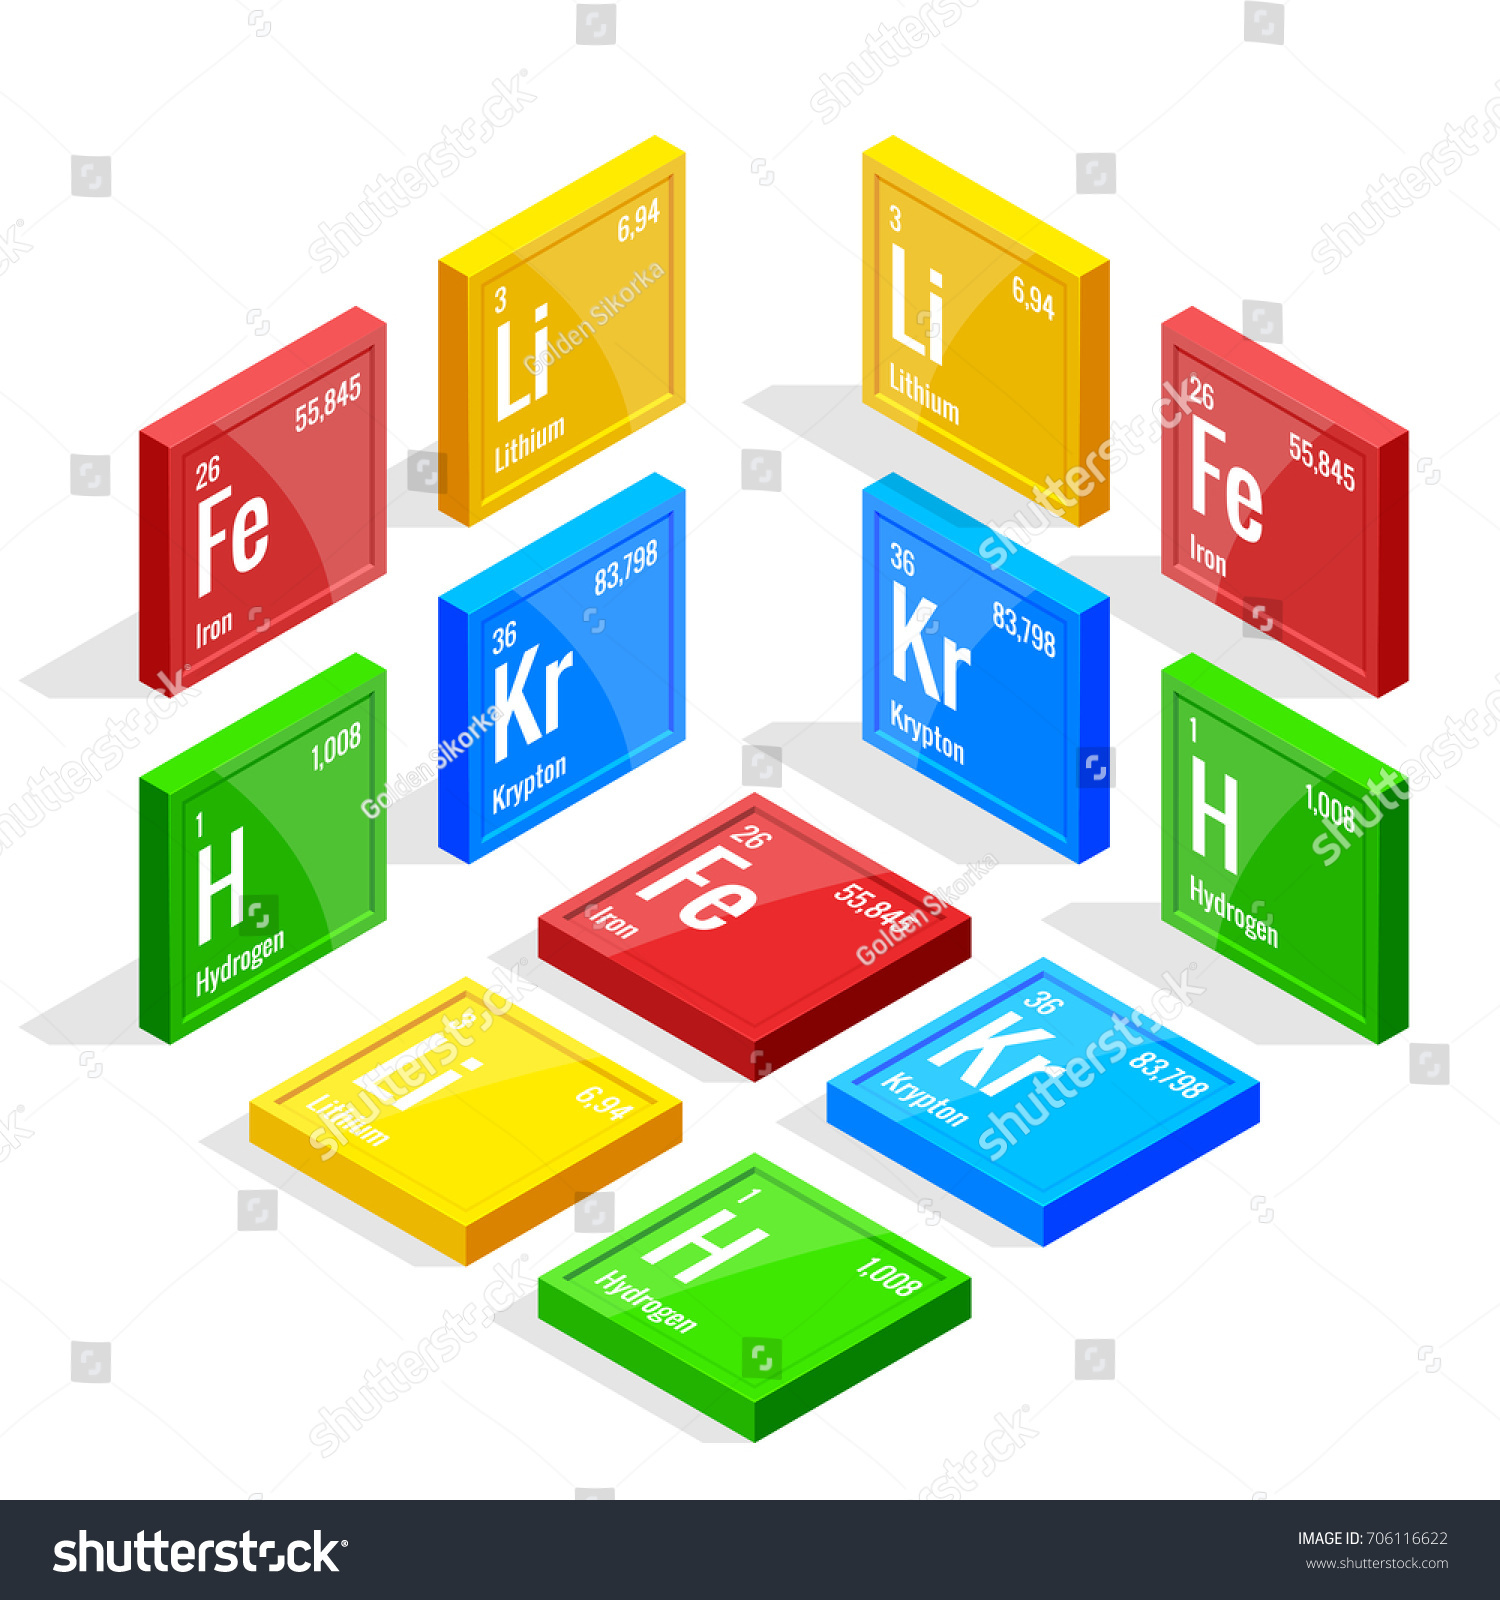 Periodic table building blocks image collections periodic table periodic table building blocks gallery periodic table images periodic table building blocks gallery periodic table images gamestrikefo Gallery